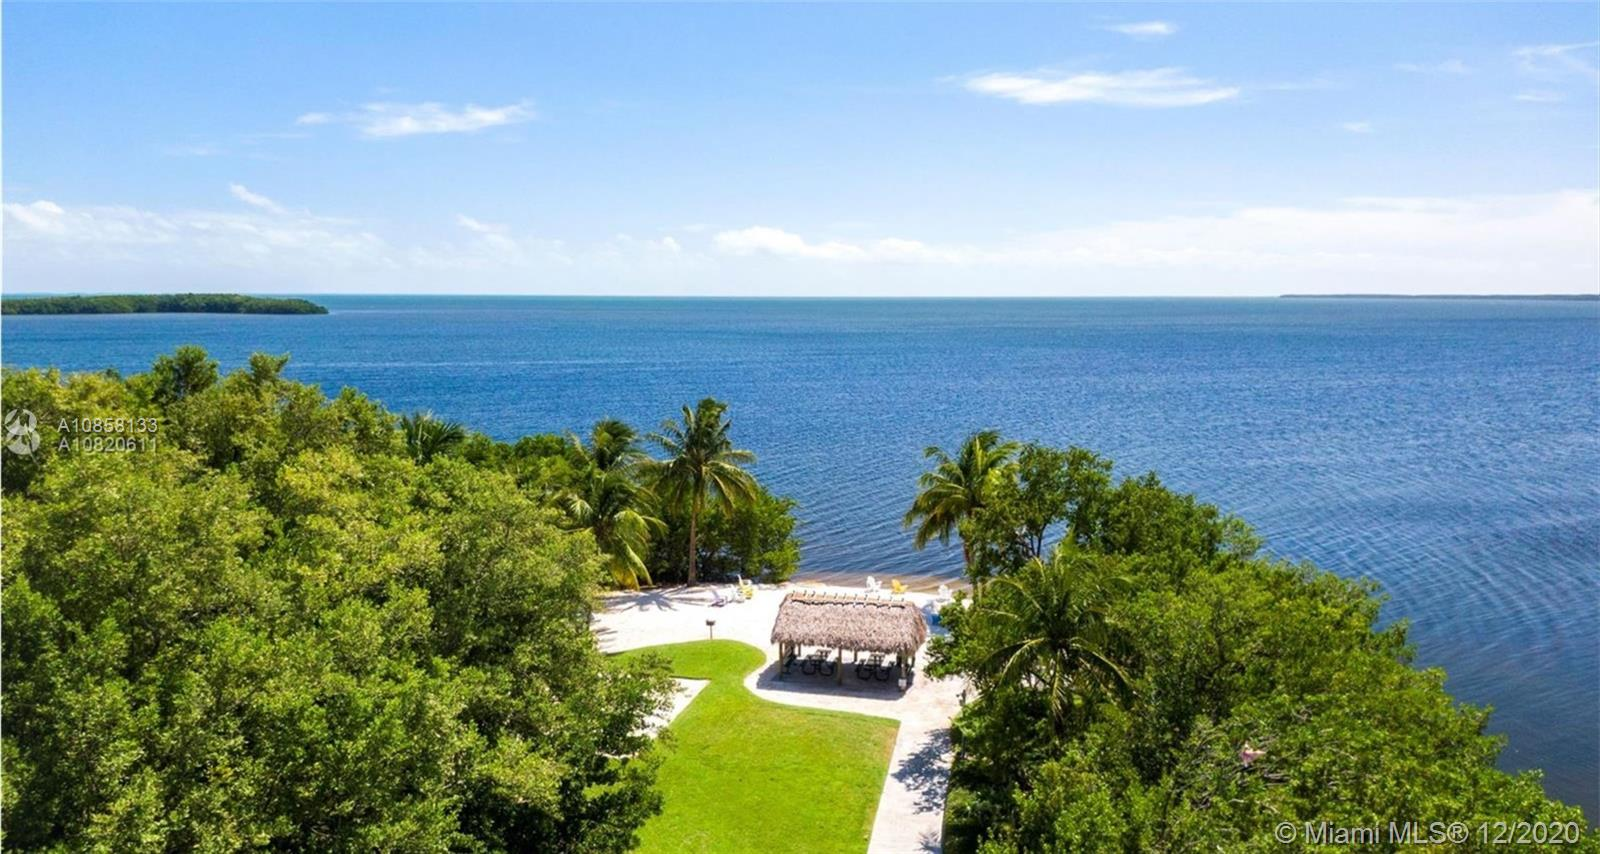 6020  Paradise Point Dr  For Sale A10858133, FL